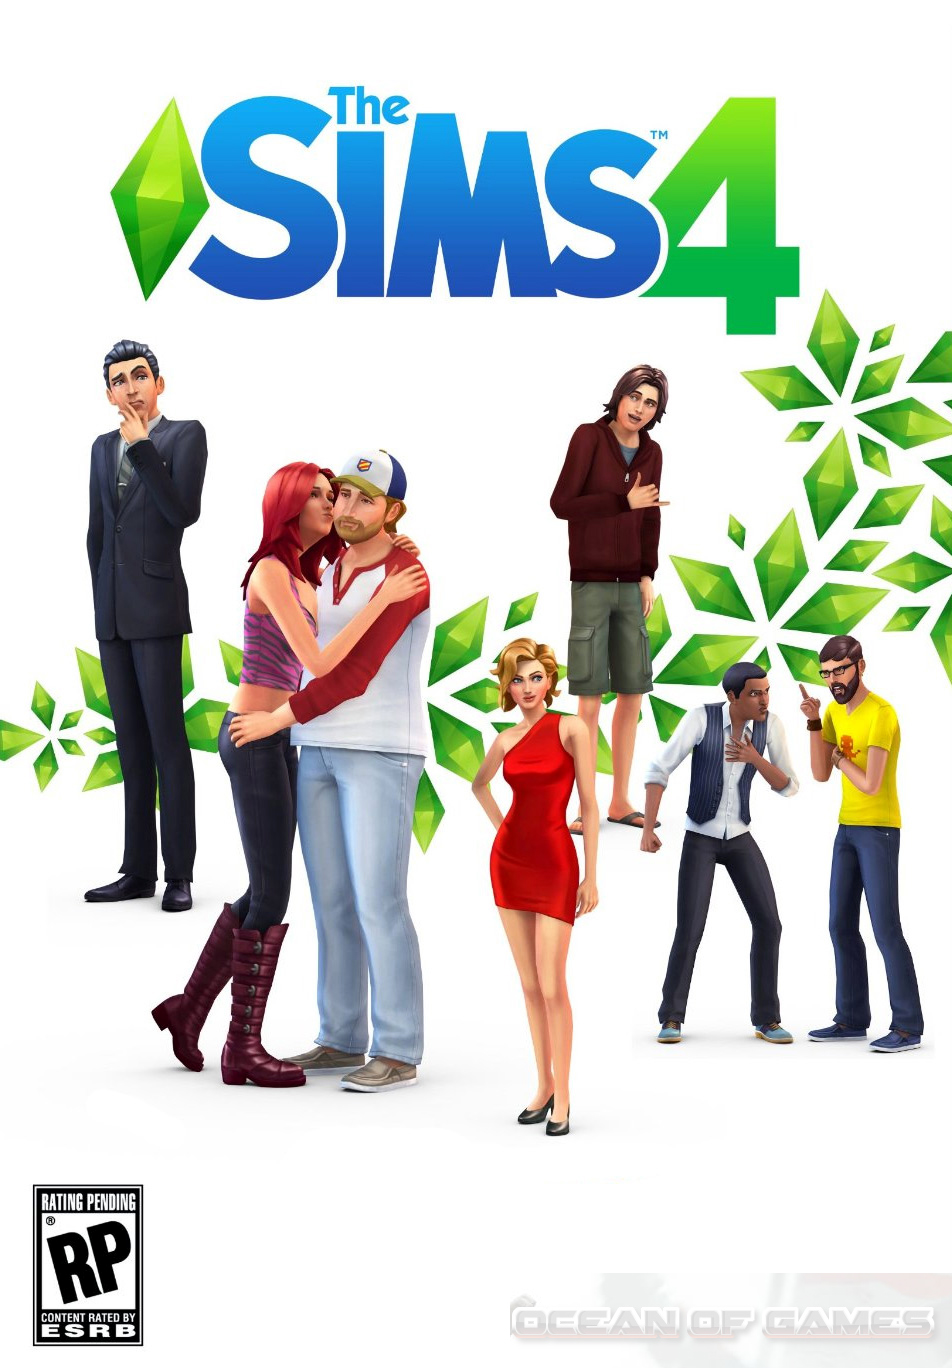 The Sims 4 Deluxe Edition Free Download